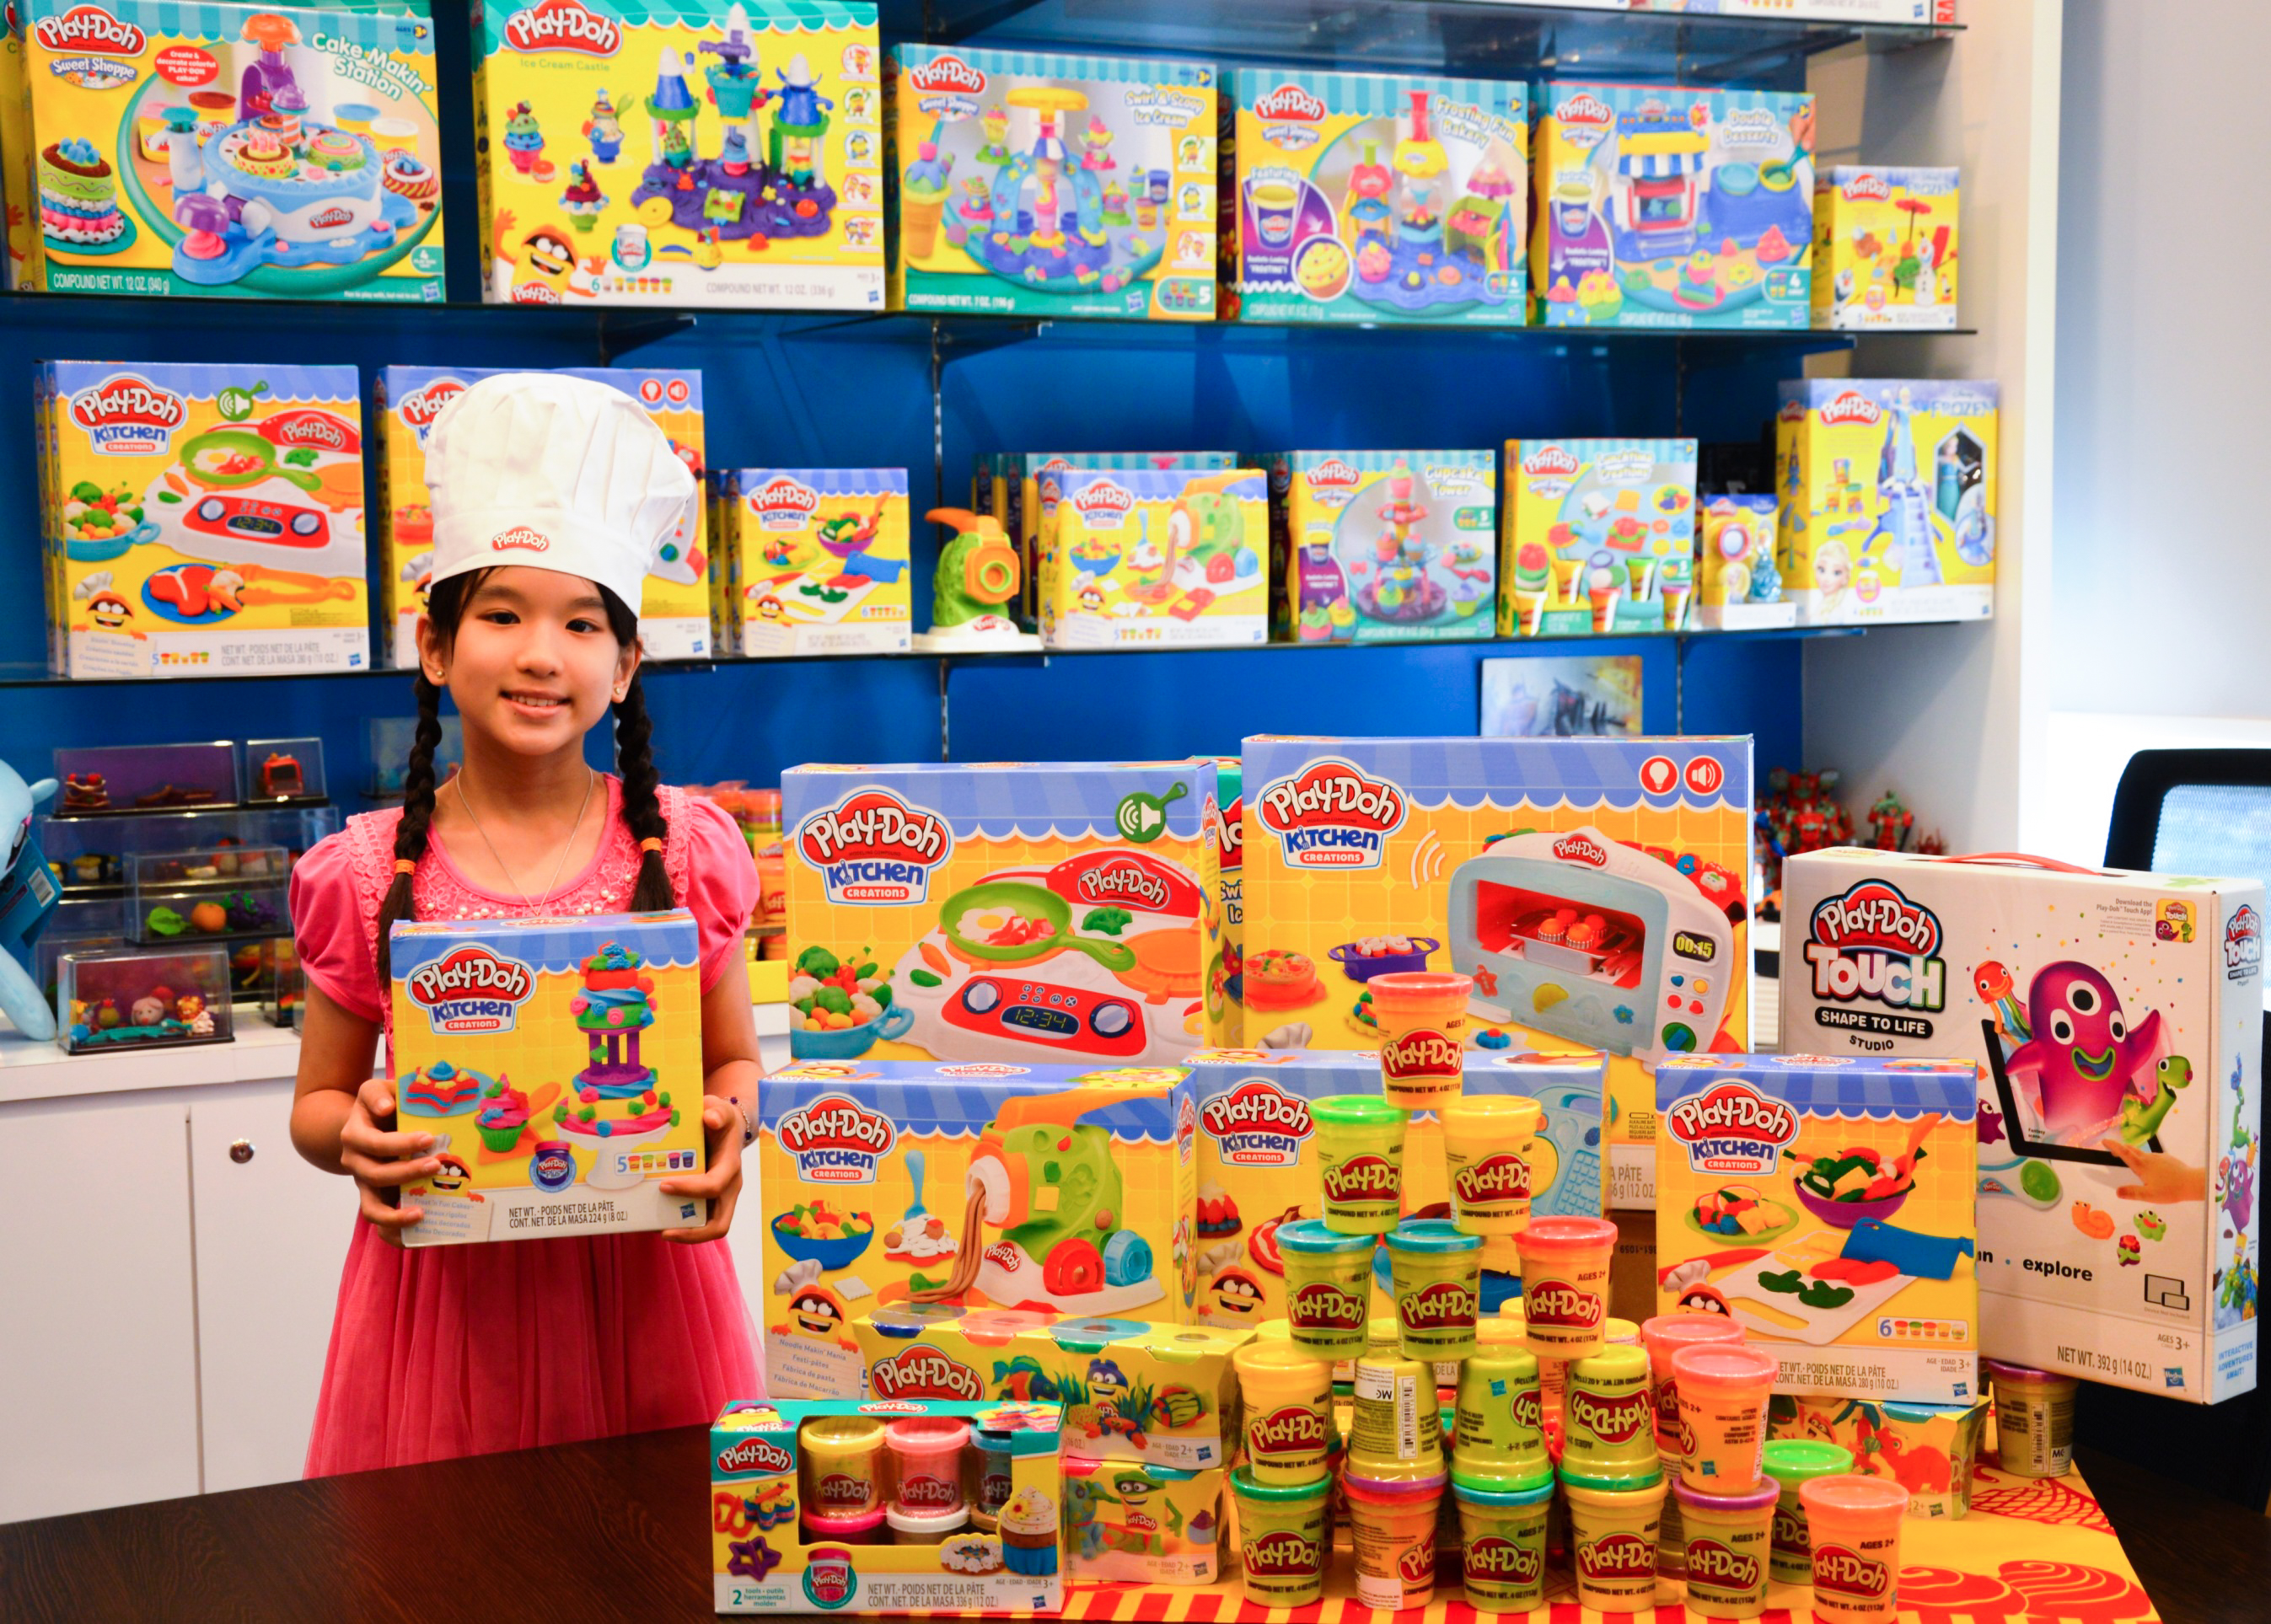 Play-Doh Malaysia Unveils Malaysian-Inspired Food Sculptures To Celebrate Malaysia Day & World Play-Doh Day